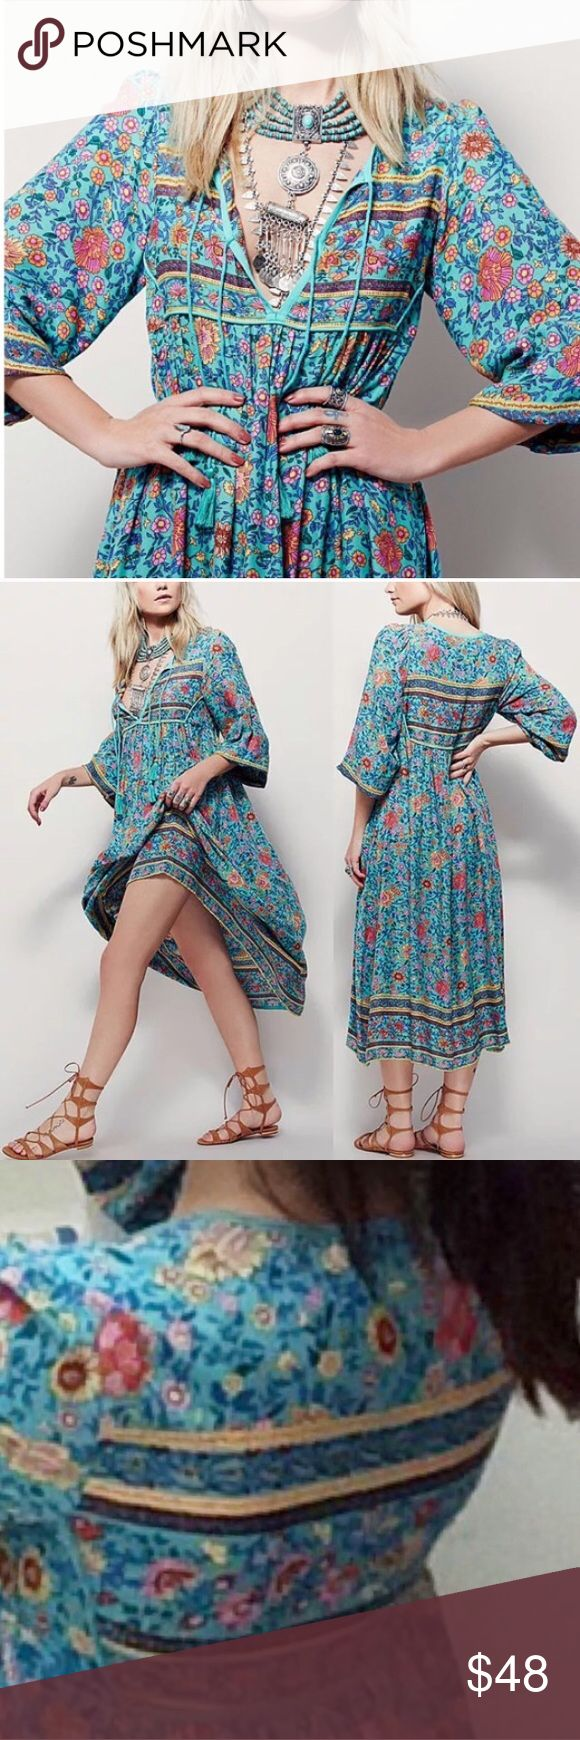 """Folk Town Boho Turquoise Maxi DRESS Floral NEW BRAND NEW!! Boho maxi-dress featuring a V-neckline w/ adjustable ties and tassel ends. Wide sleeves w/ elastic cuffs. In a beautifully detailed print & silhouette, this vintage-inspired floral pattern is in an oversized fit. 🌟Similar style by Free People, Spell & the Gypsy Collective.🌟  S: Bust: 39""""/Waist: 35.9""""/L: 46.4"""" M: Bust: 39.8""""/Waist: 37""""/L: 47.2"""" L: Bust: 41""""/Waist: 38.6""""/L: 48"""" XL: Bust: 41.9""""/Waist: 39""""/L: 48.8""""  🌟Item is Brand…"""